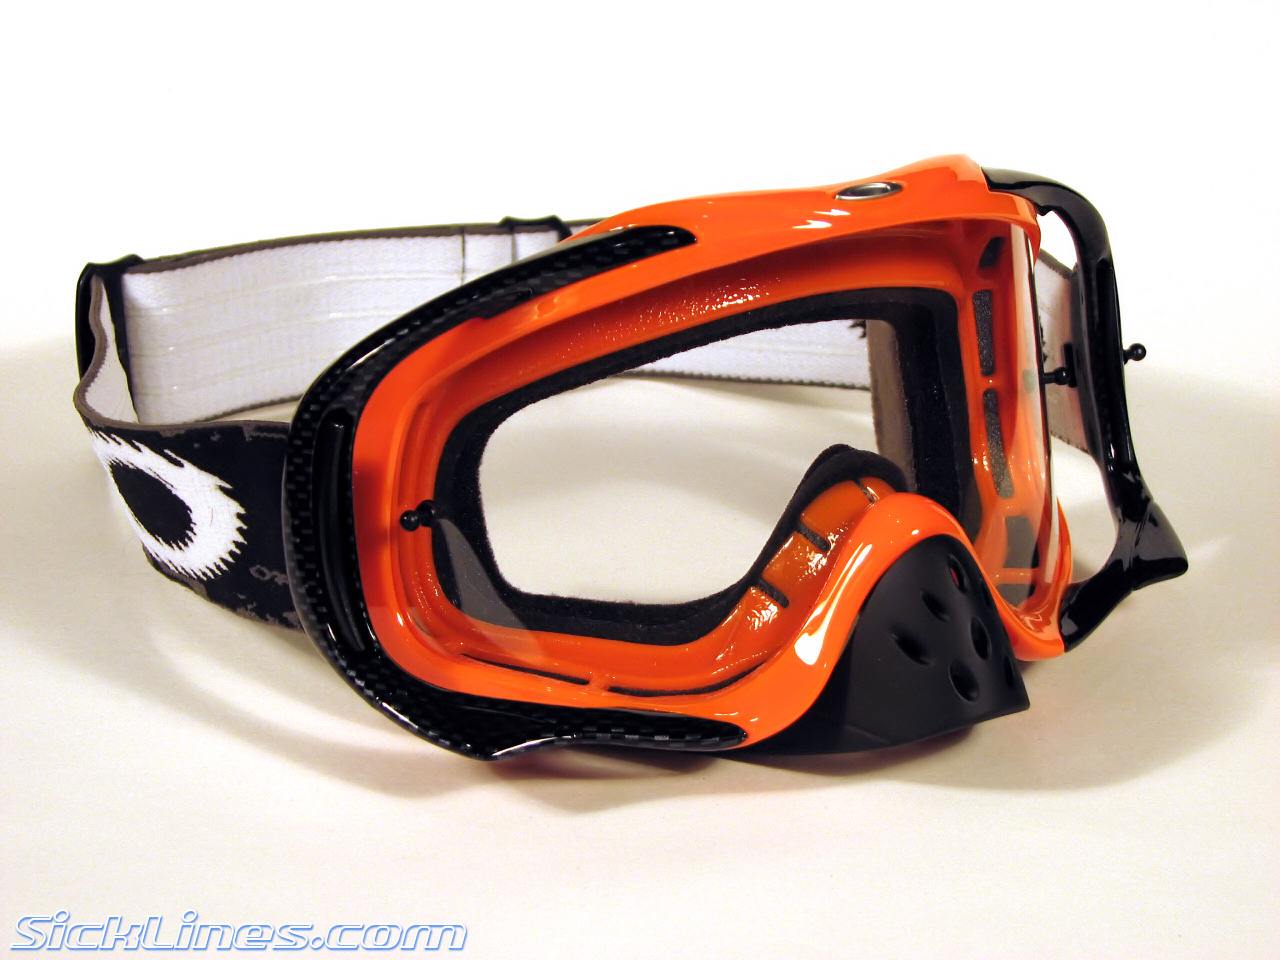 discount oakley goggles  Oakley Crowbar MX Goggle Review - Sick Lines \u2013 mountain bike ...